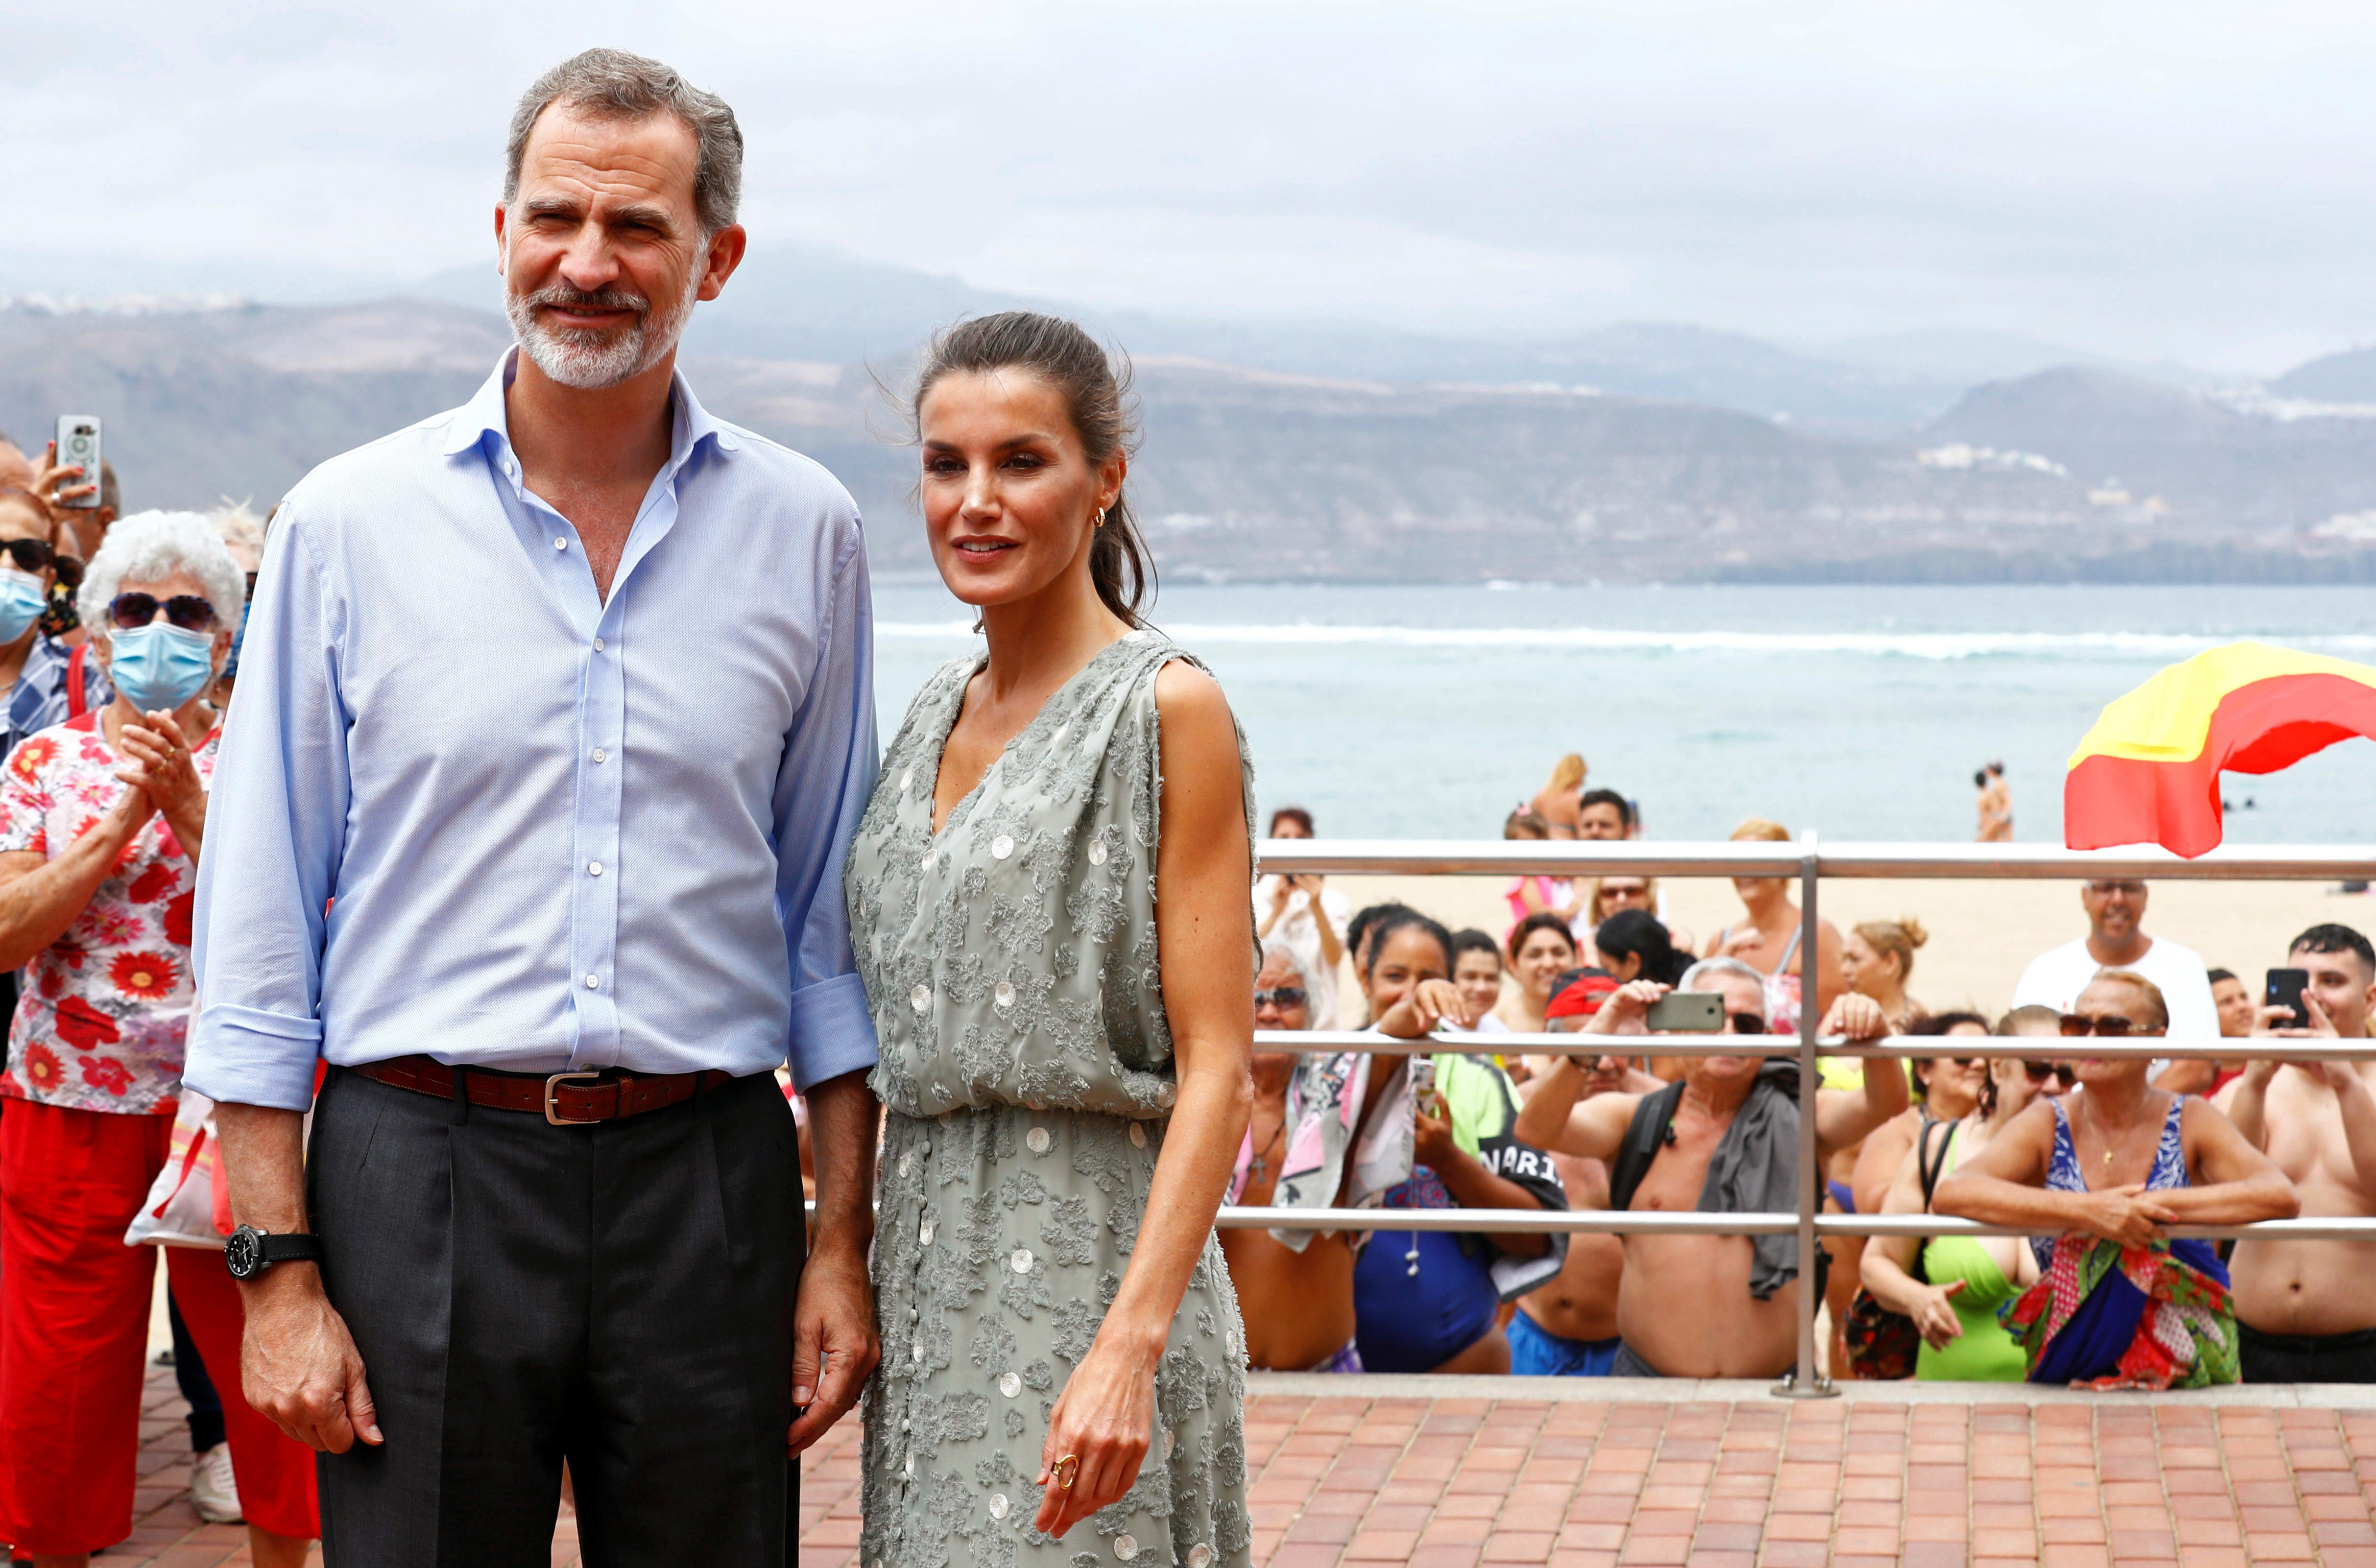 From Canary Islands, royals push to save tourism in Spain